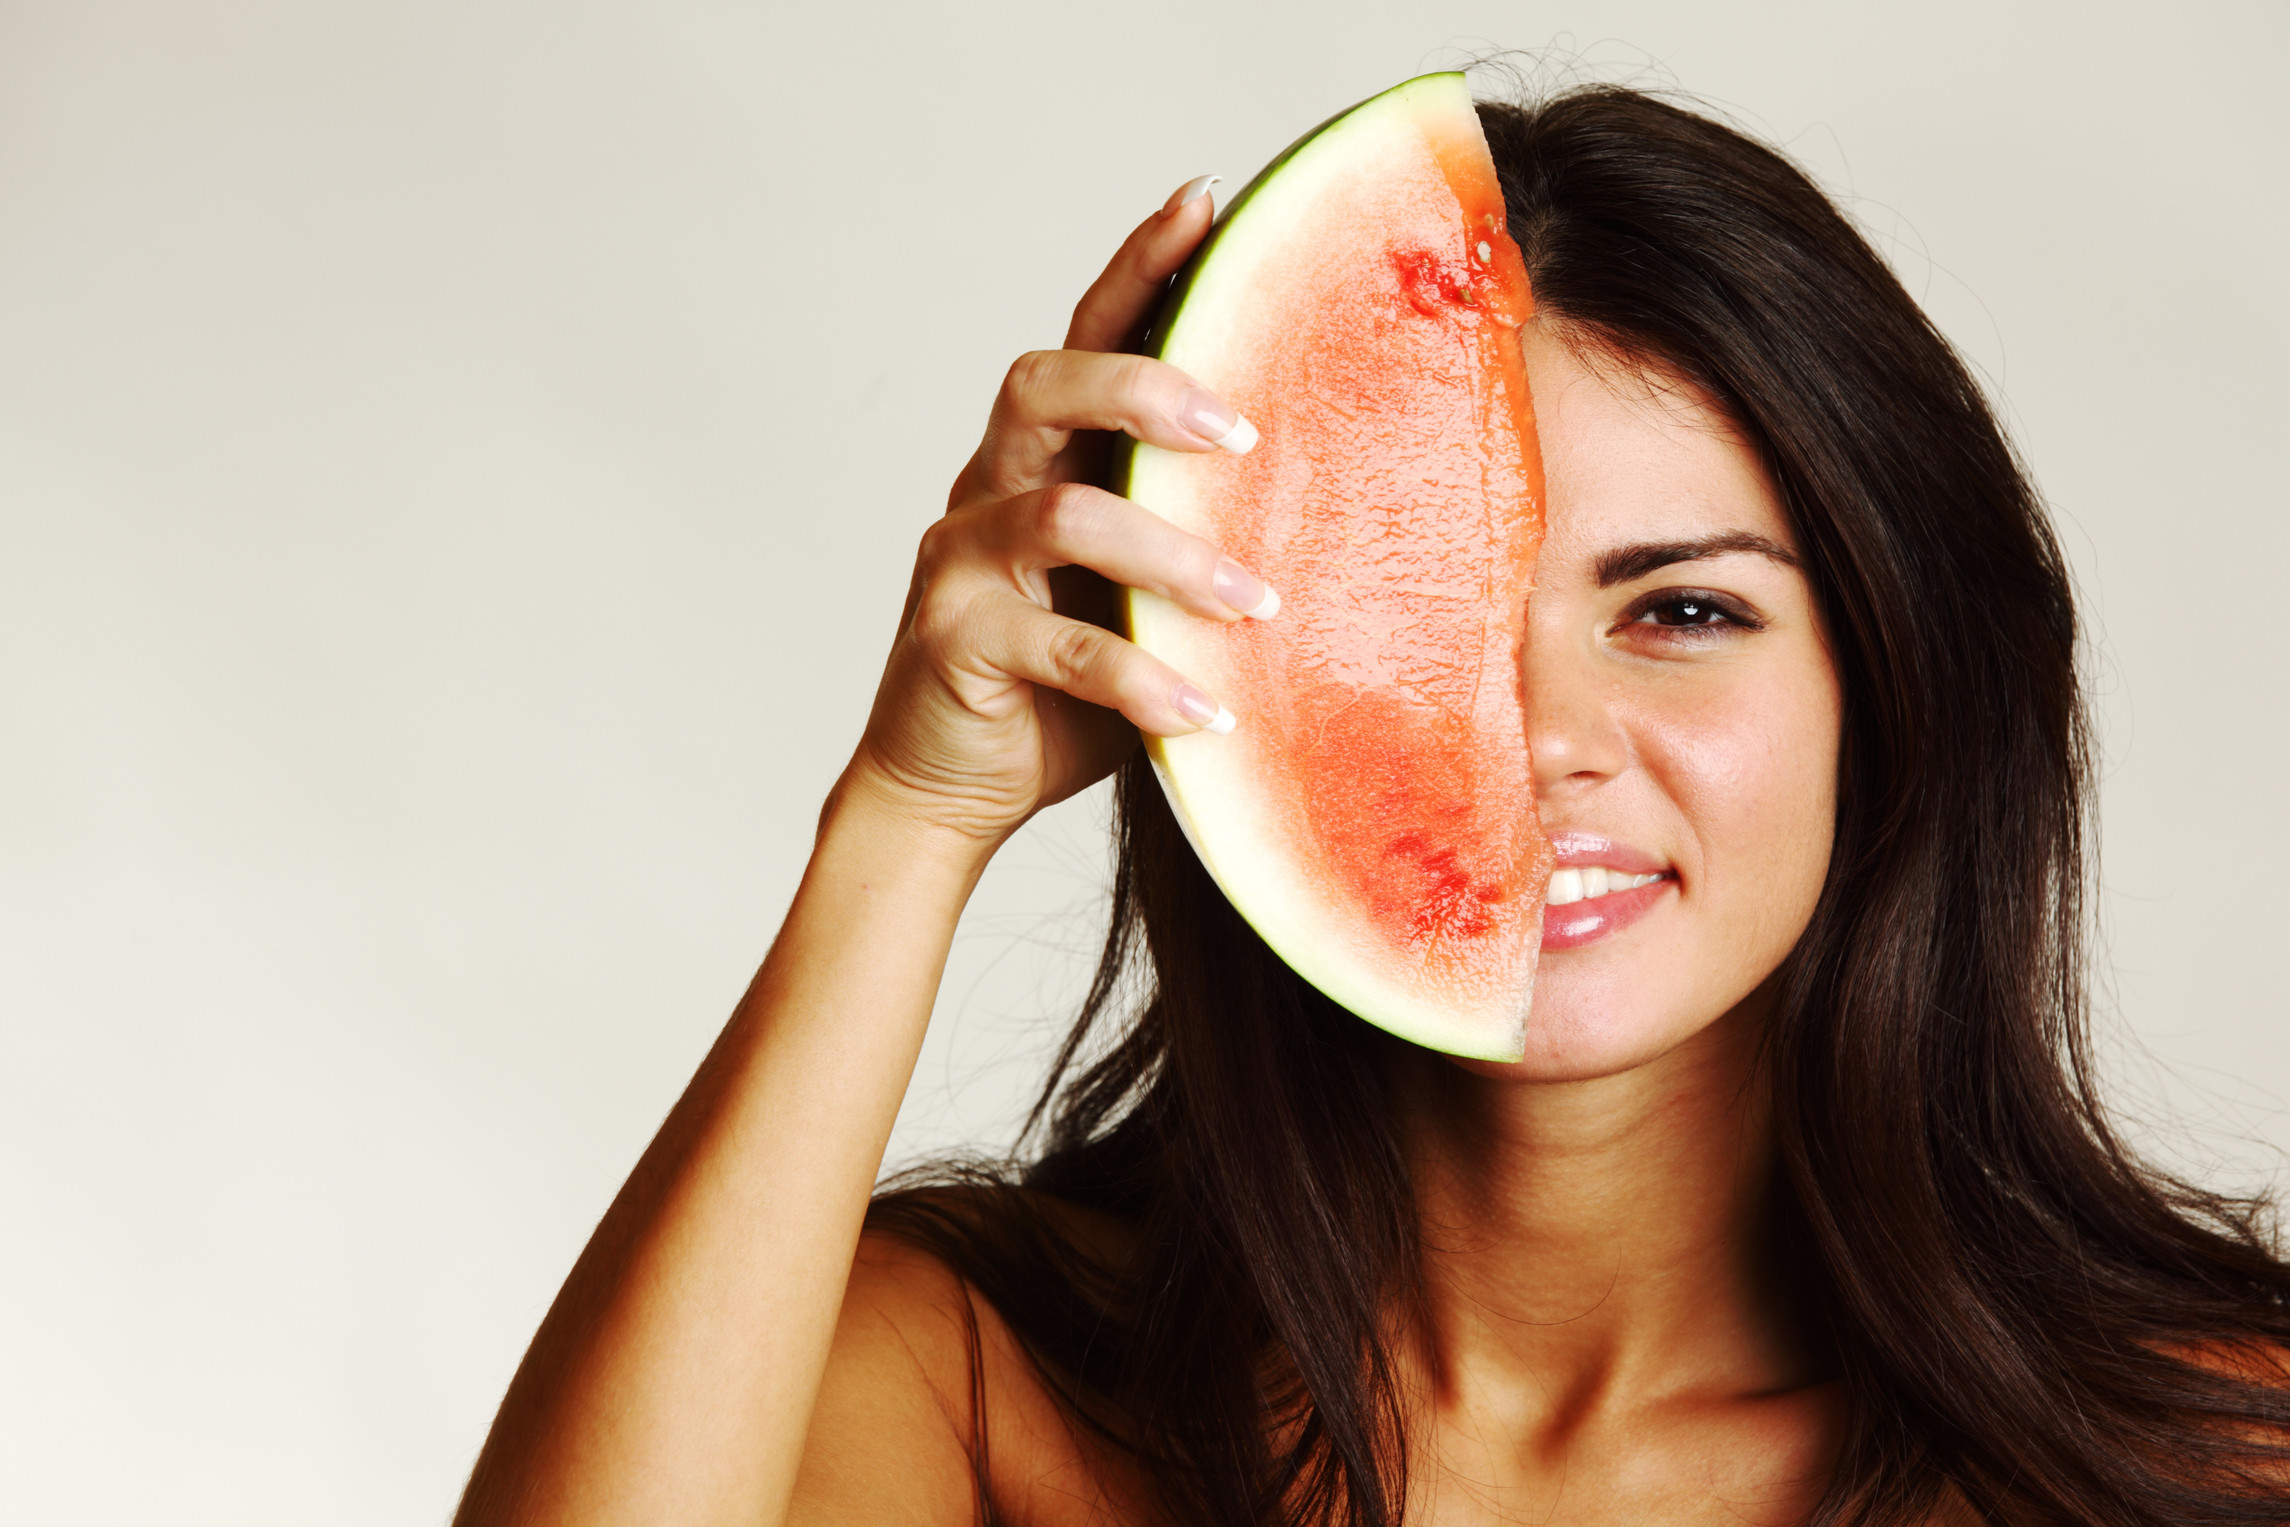 Woman Watermelon